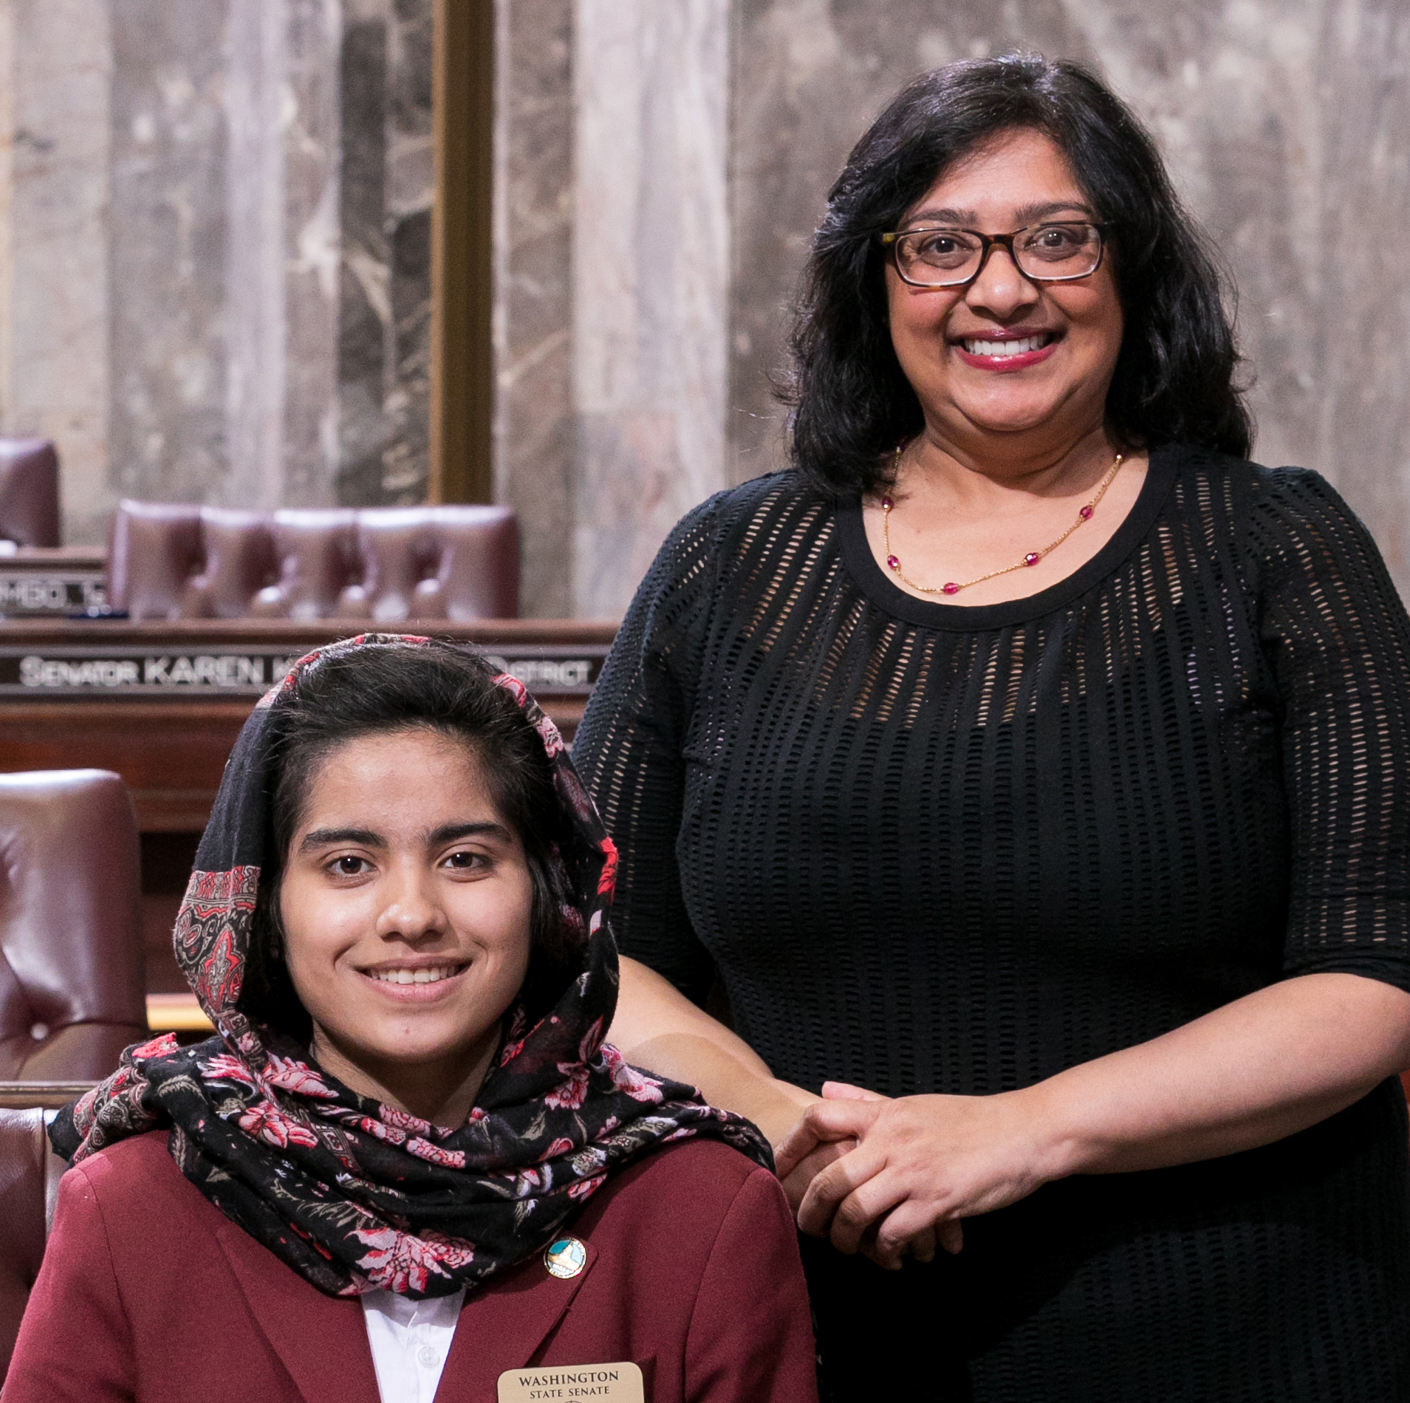 Link to article: Upward Bound Student Serves as Page in Washington State Senate